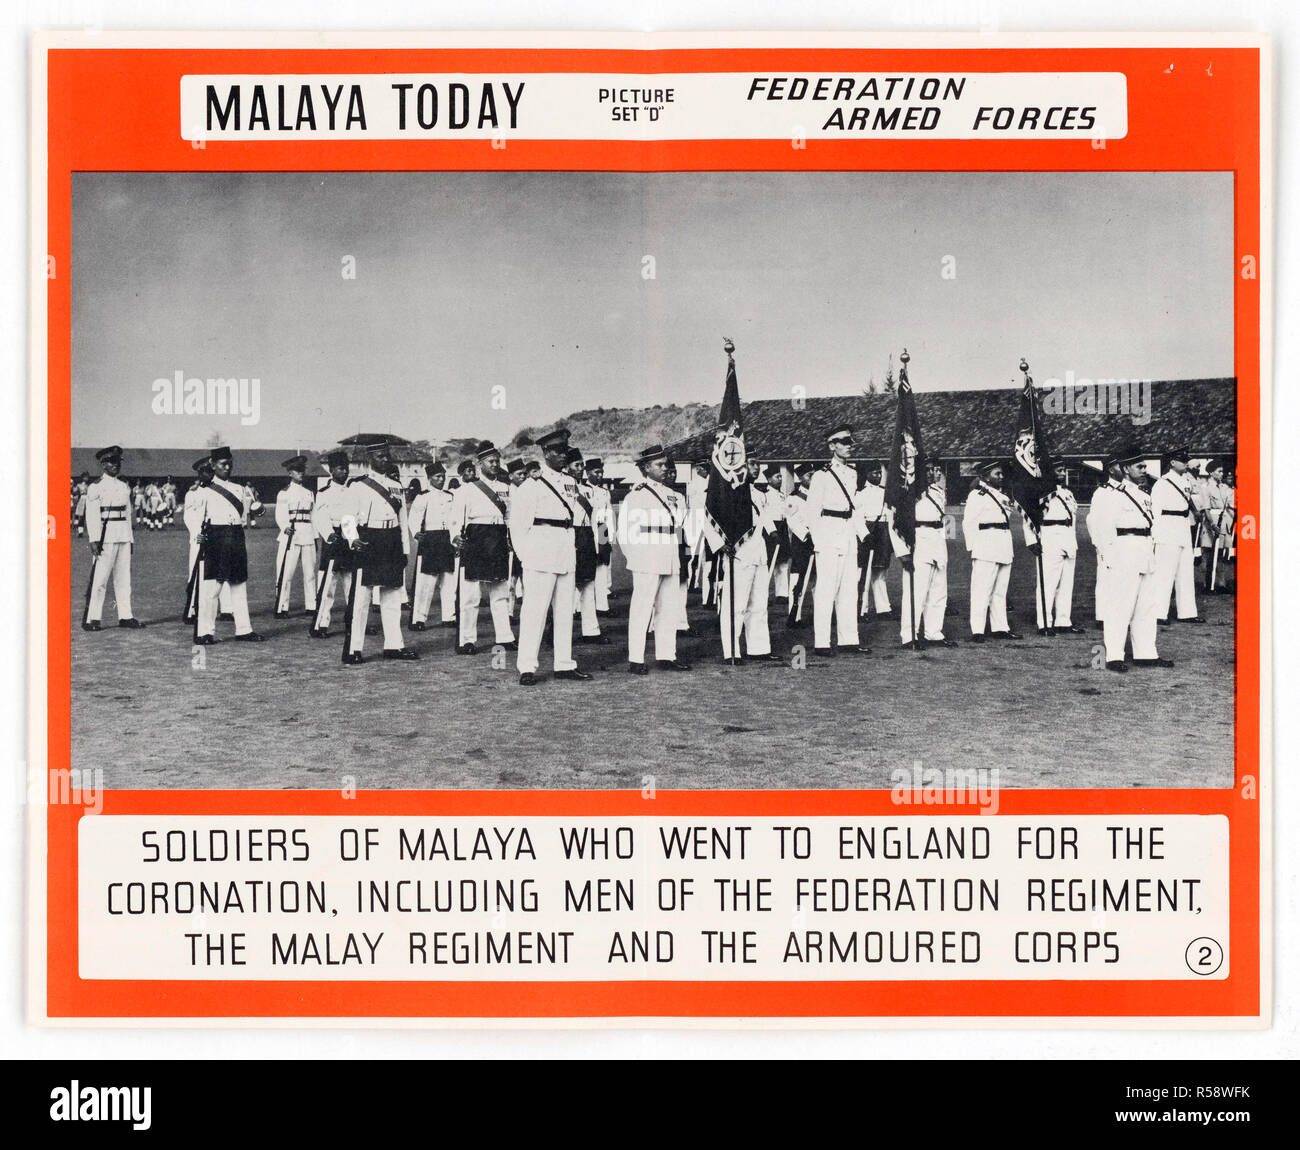 Malaysia History - Malay soldiers who went to England for the coronation of Queen Elizabeth II , including men of the Federated Regiment. - Stock Image